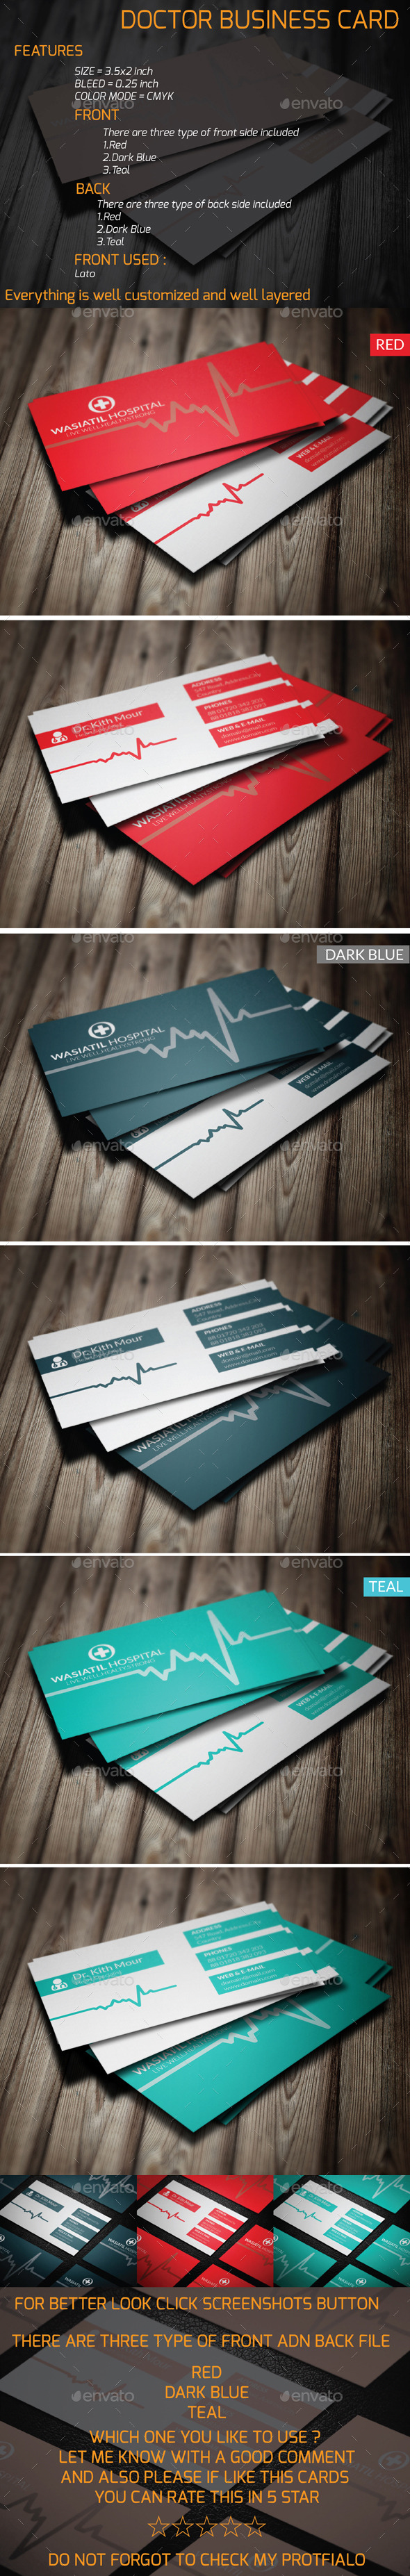 GraphicRiver Doctor Business Card 9848067